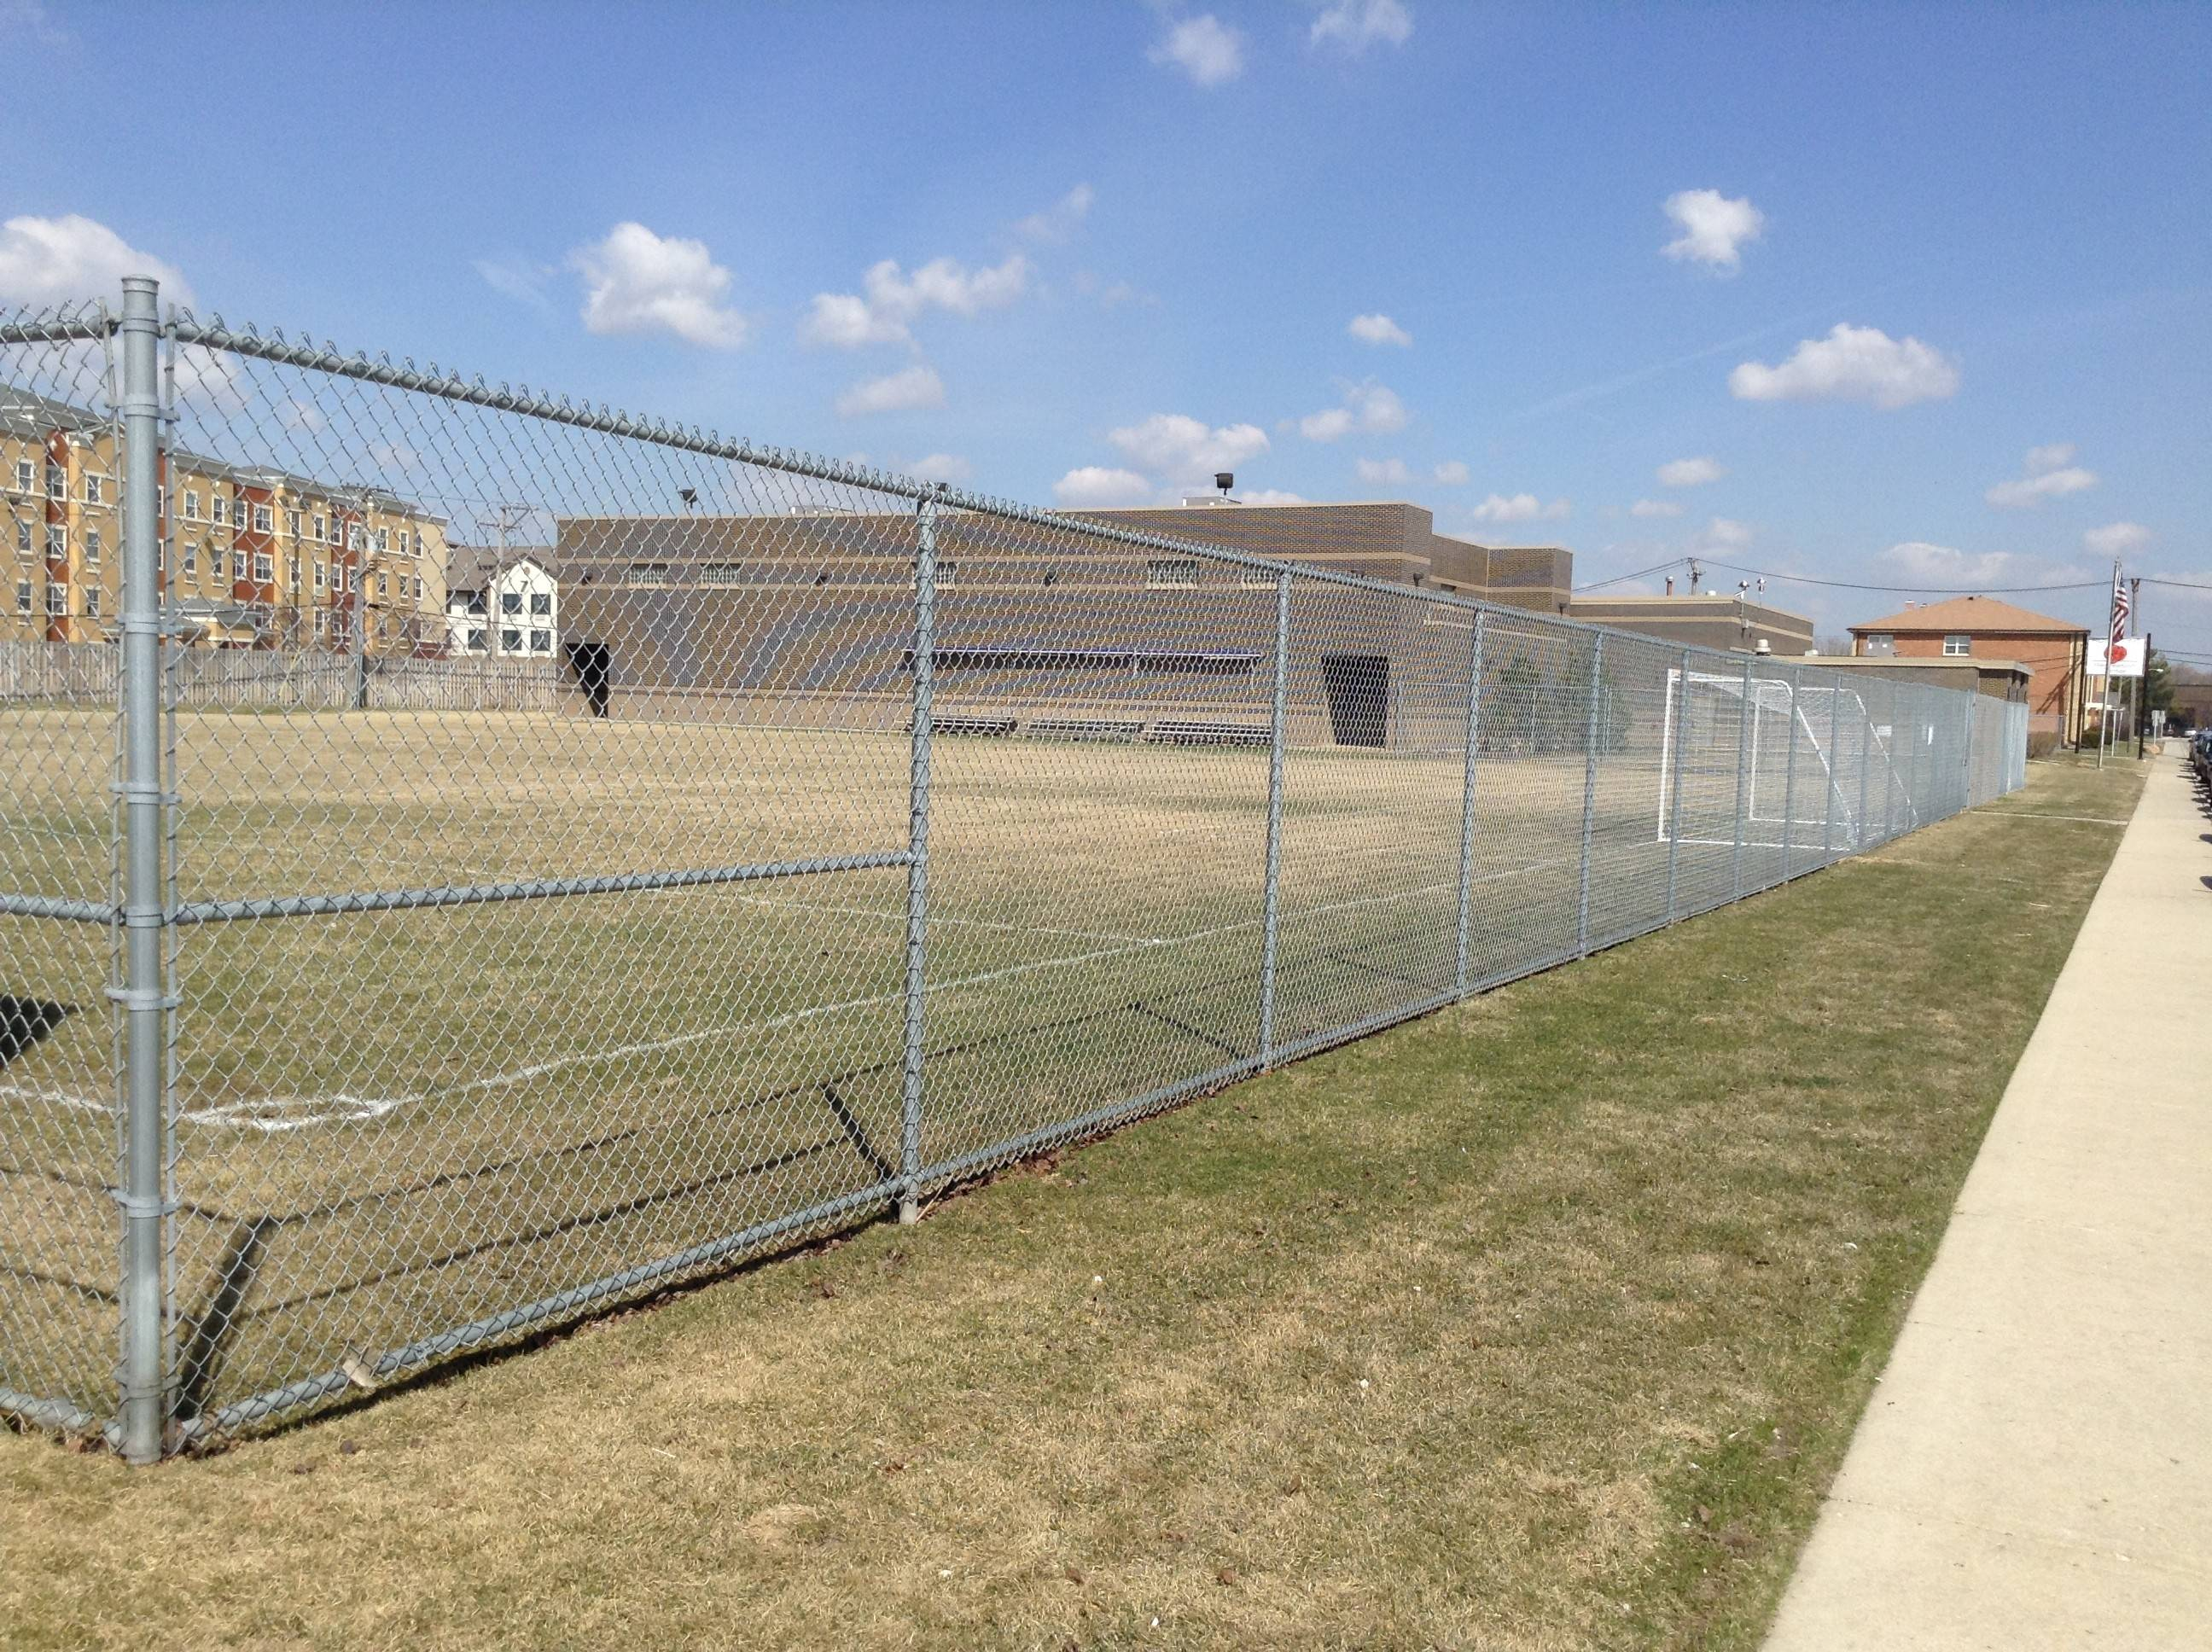 A $678,175 project to install artificial turf on a grass field next to the Barry Recreational Center in Rosemont begins this week.